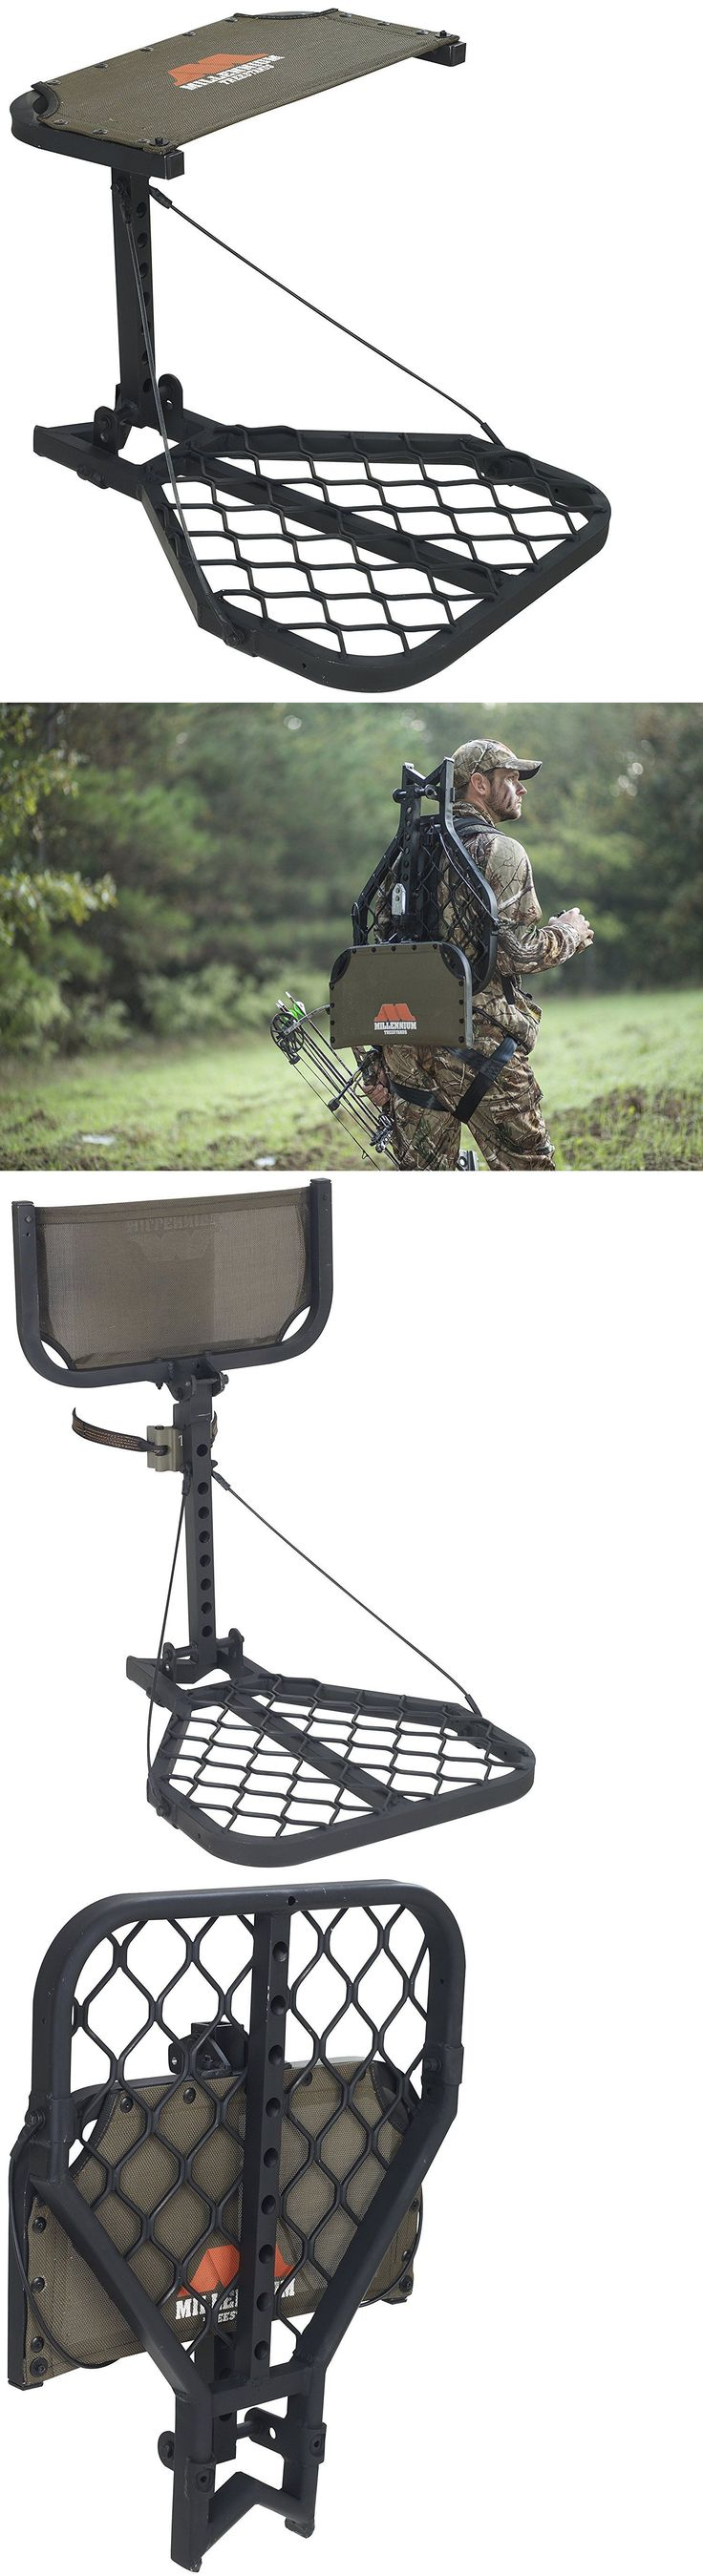 Tree Stands 52508: Millennium Treestands M7 Microlite Hang-On Tree Stand (Includes Safety Line) -> BUY IT NOW ONLY: $262.79 on eBay!